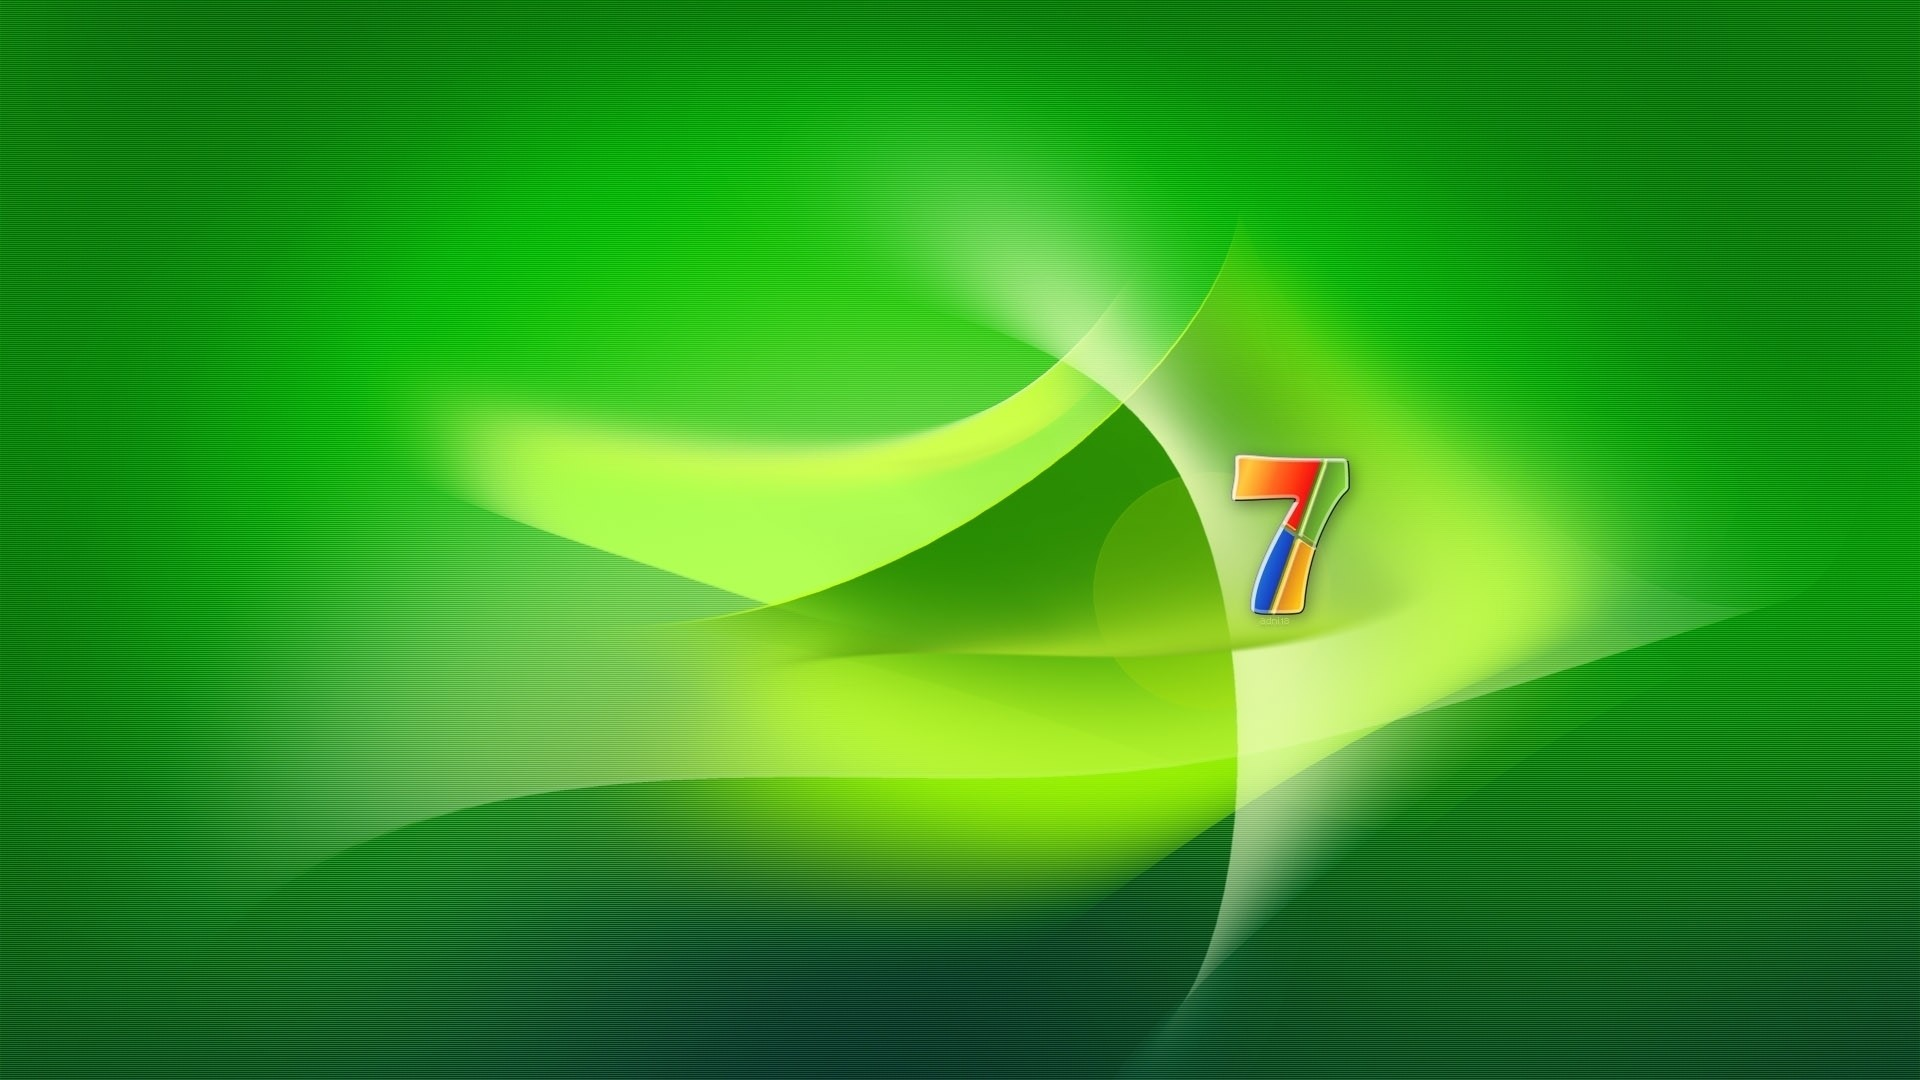 Windows 7 Ultimate Wallpaper 1280x800 (64+ Images